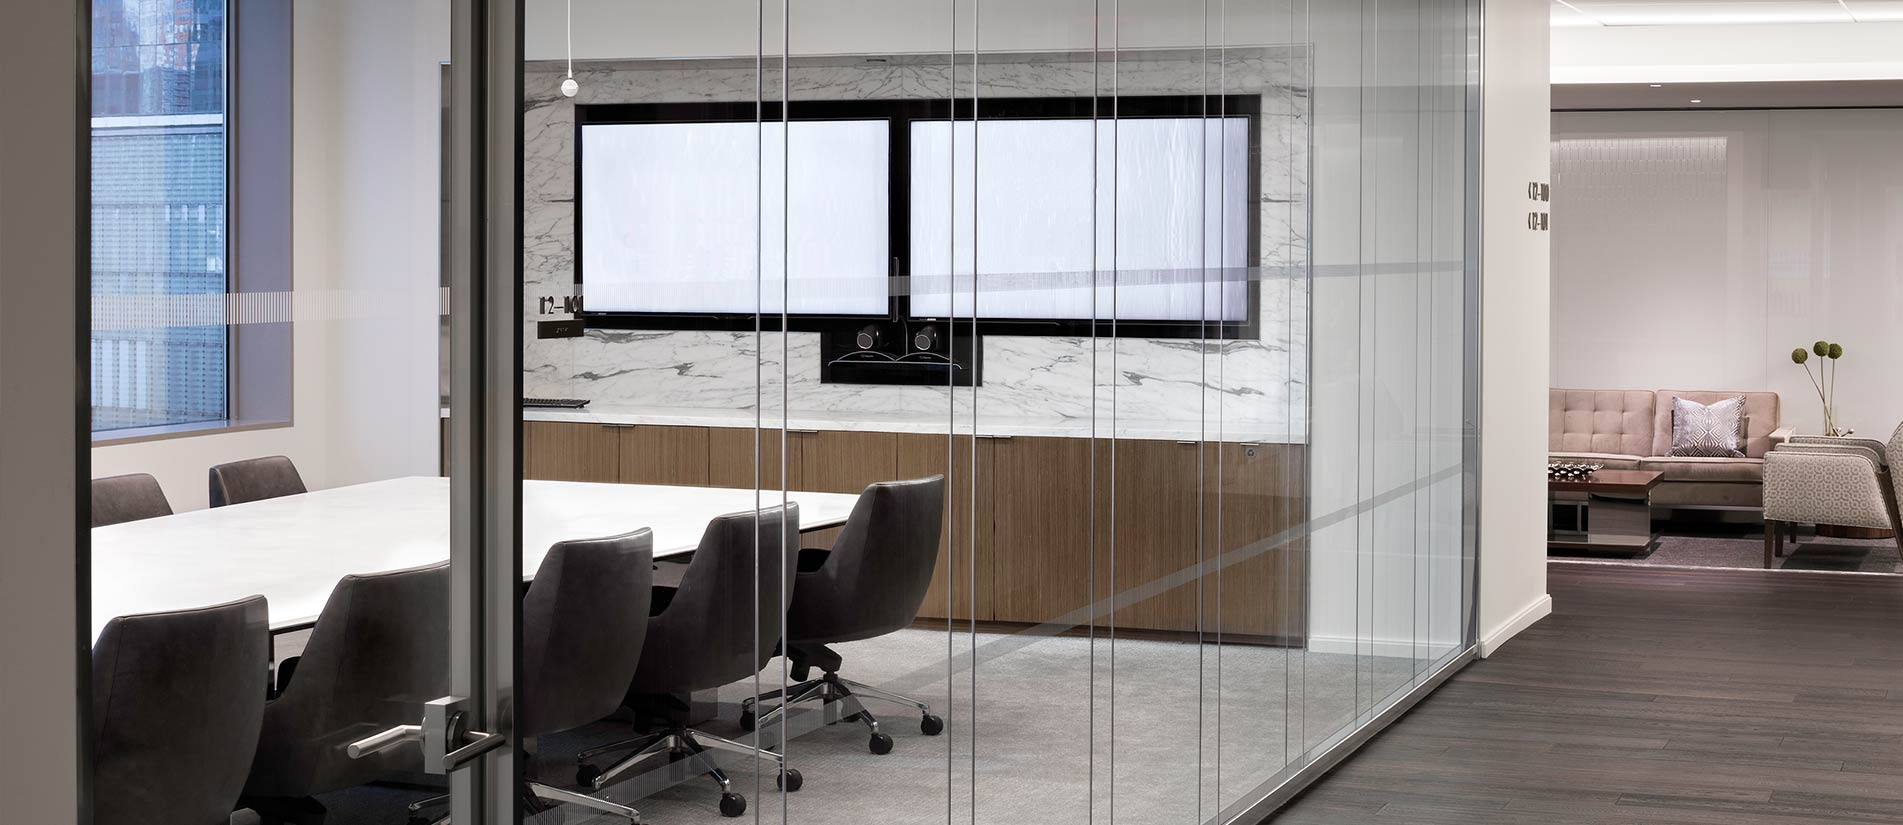 acoustic-glass-walls-sound-proofing-office-interior-gallery-2